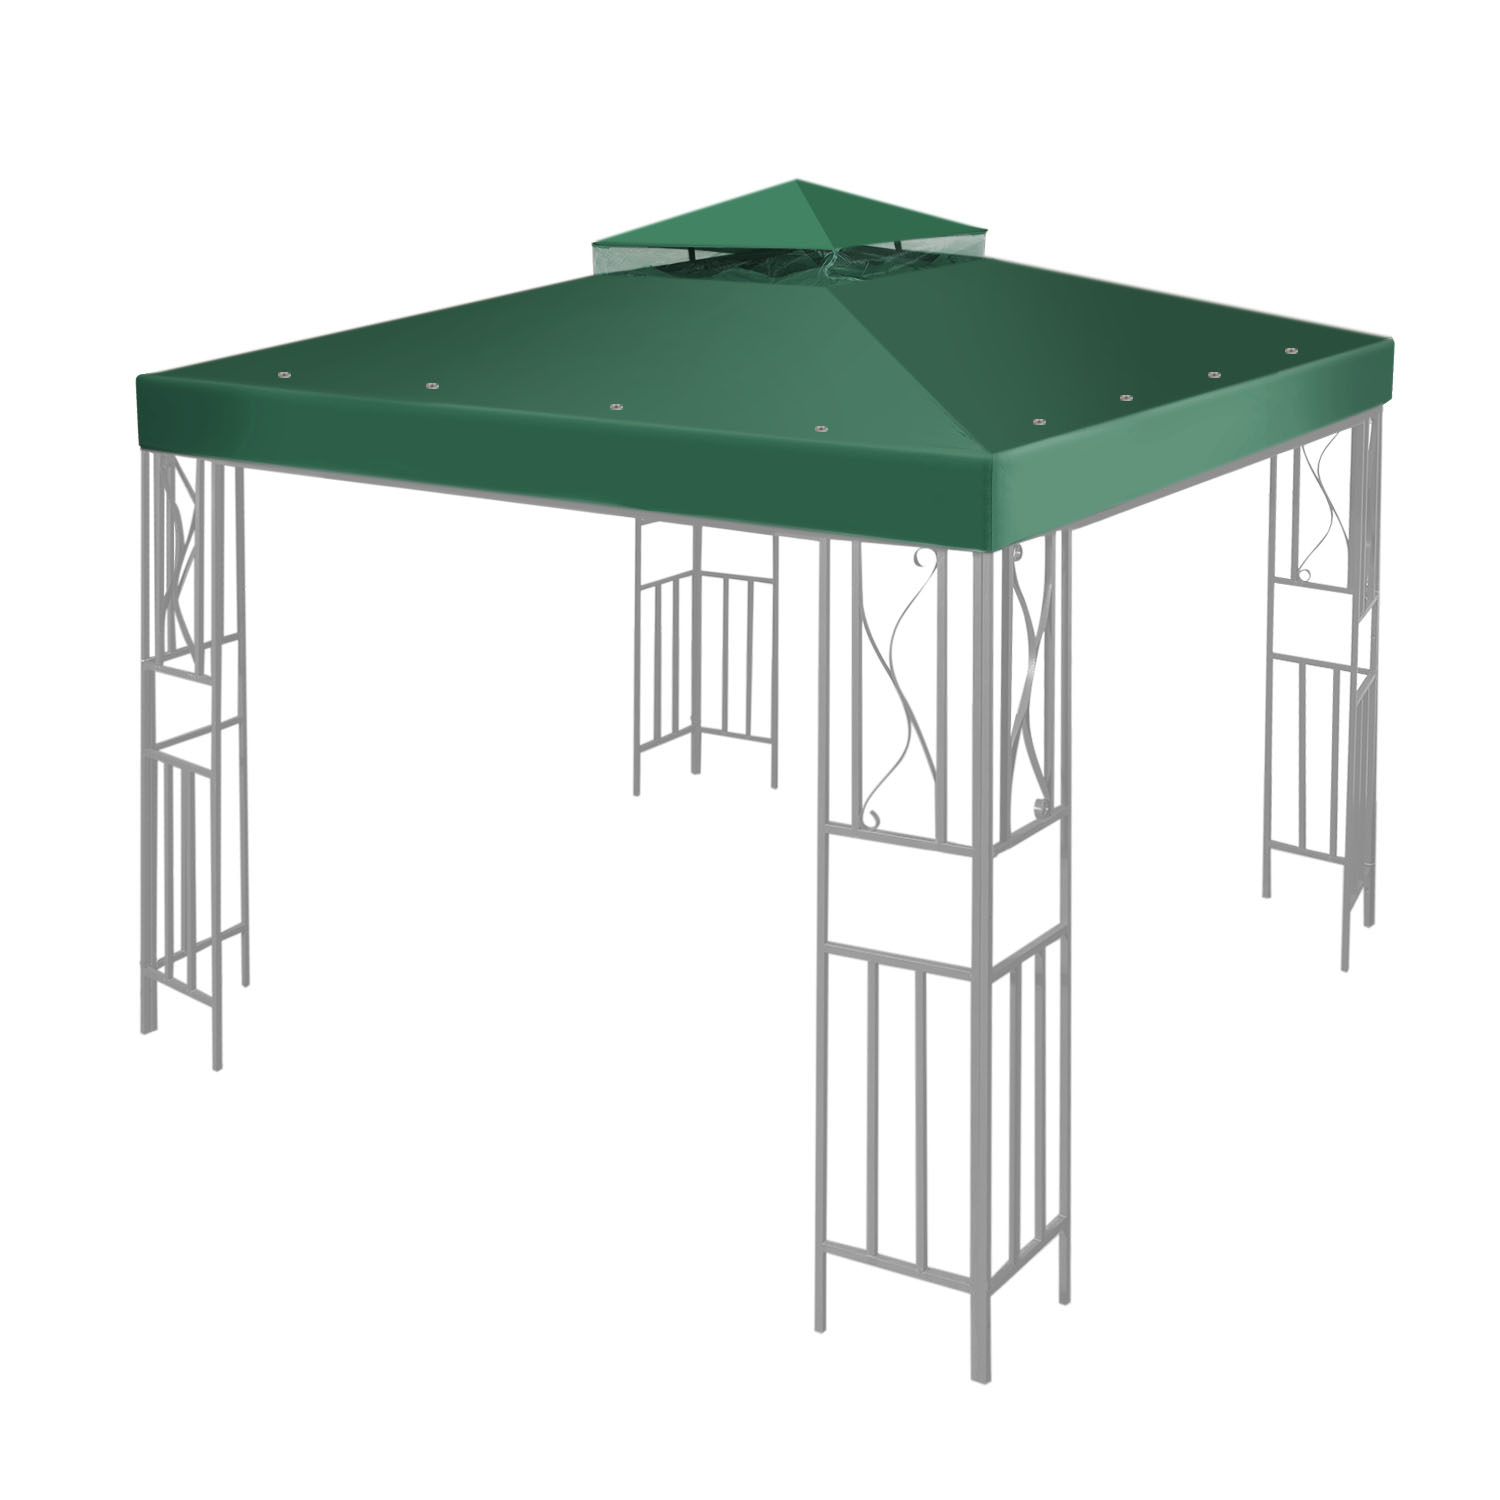 CE Compass 10'x10' Gazebo Canopy Top Replacement 2Tier UV30 Outdoor Garden Patio Cover Green at Sears.com